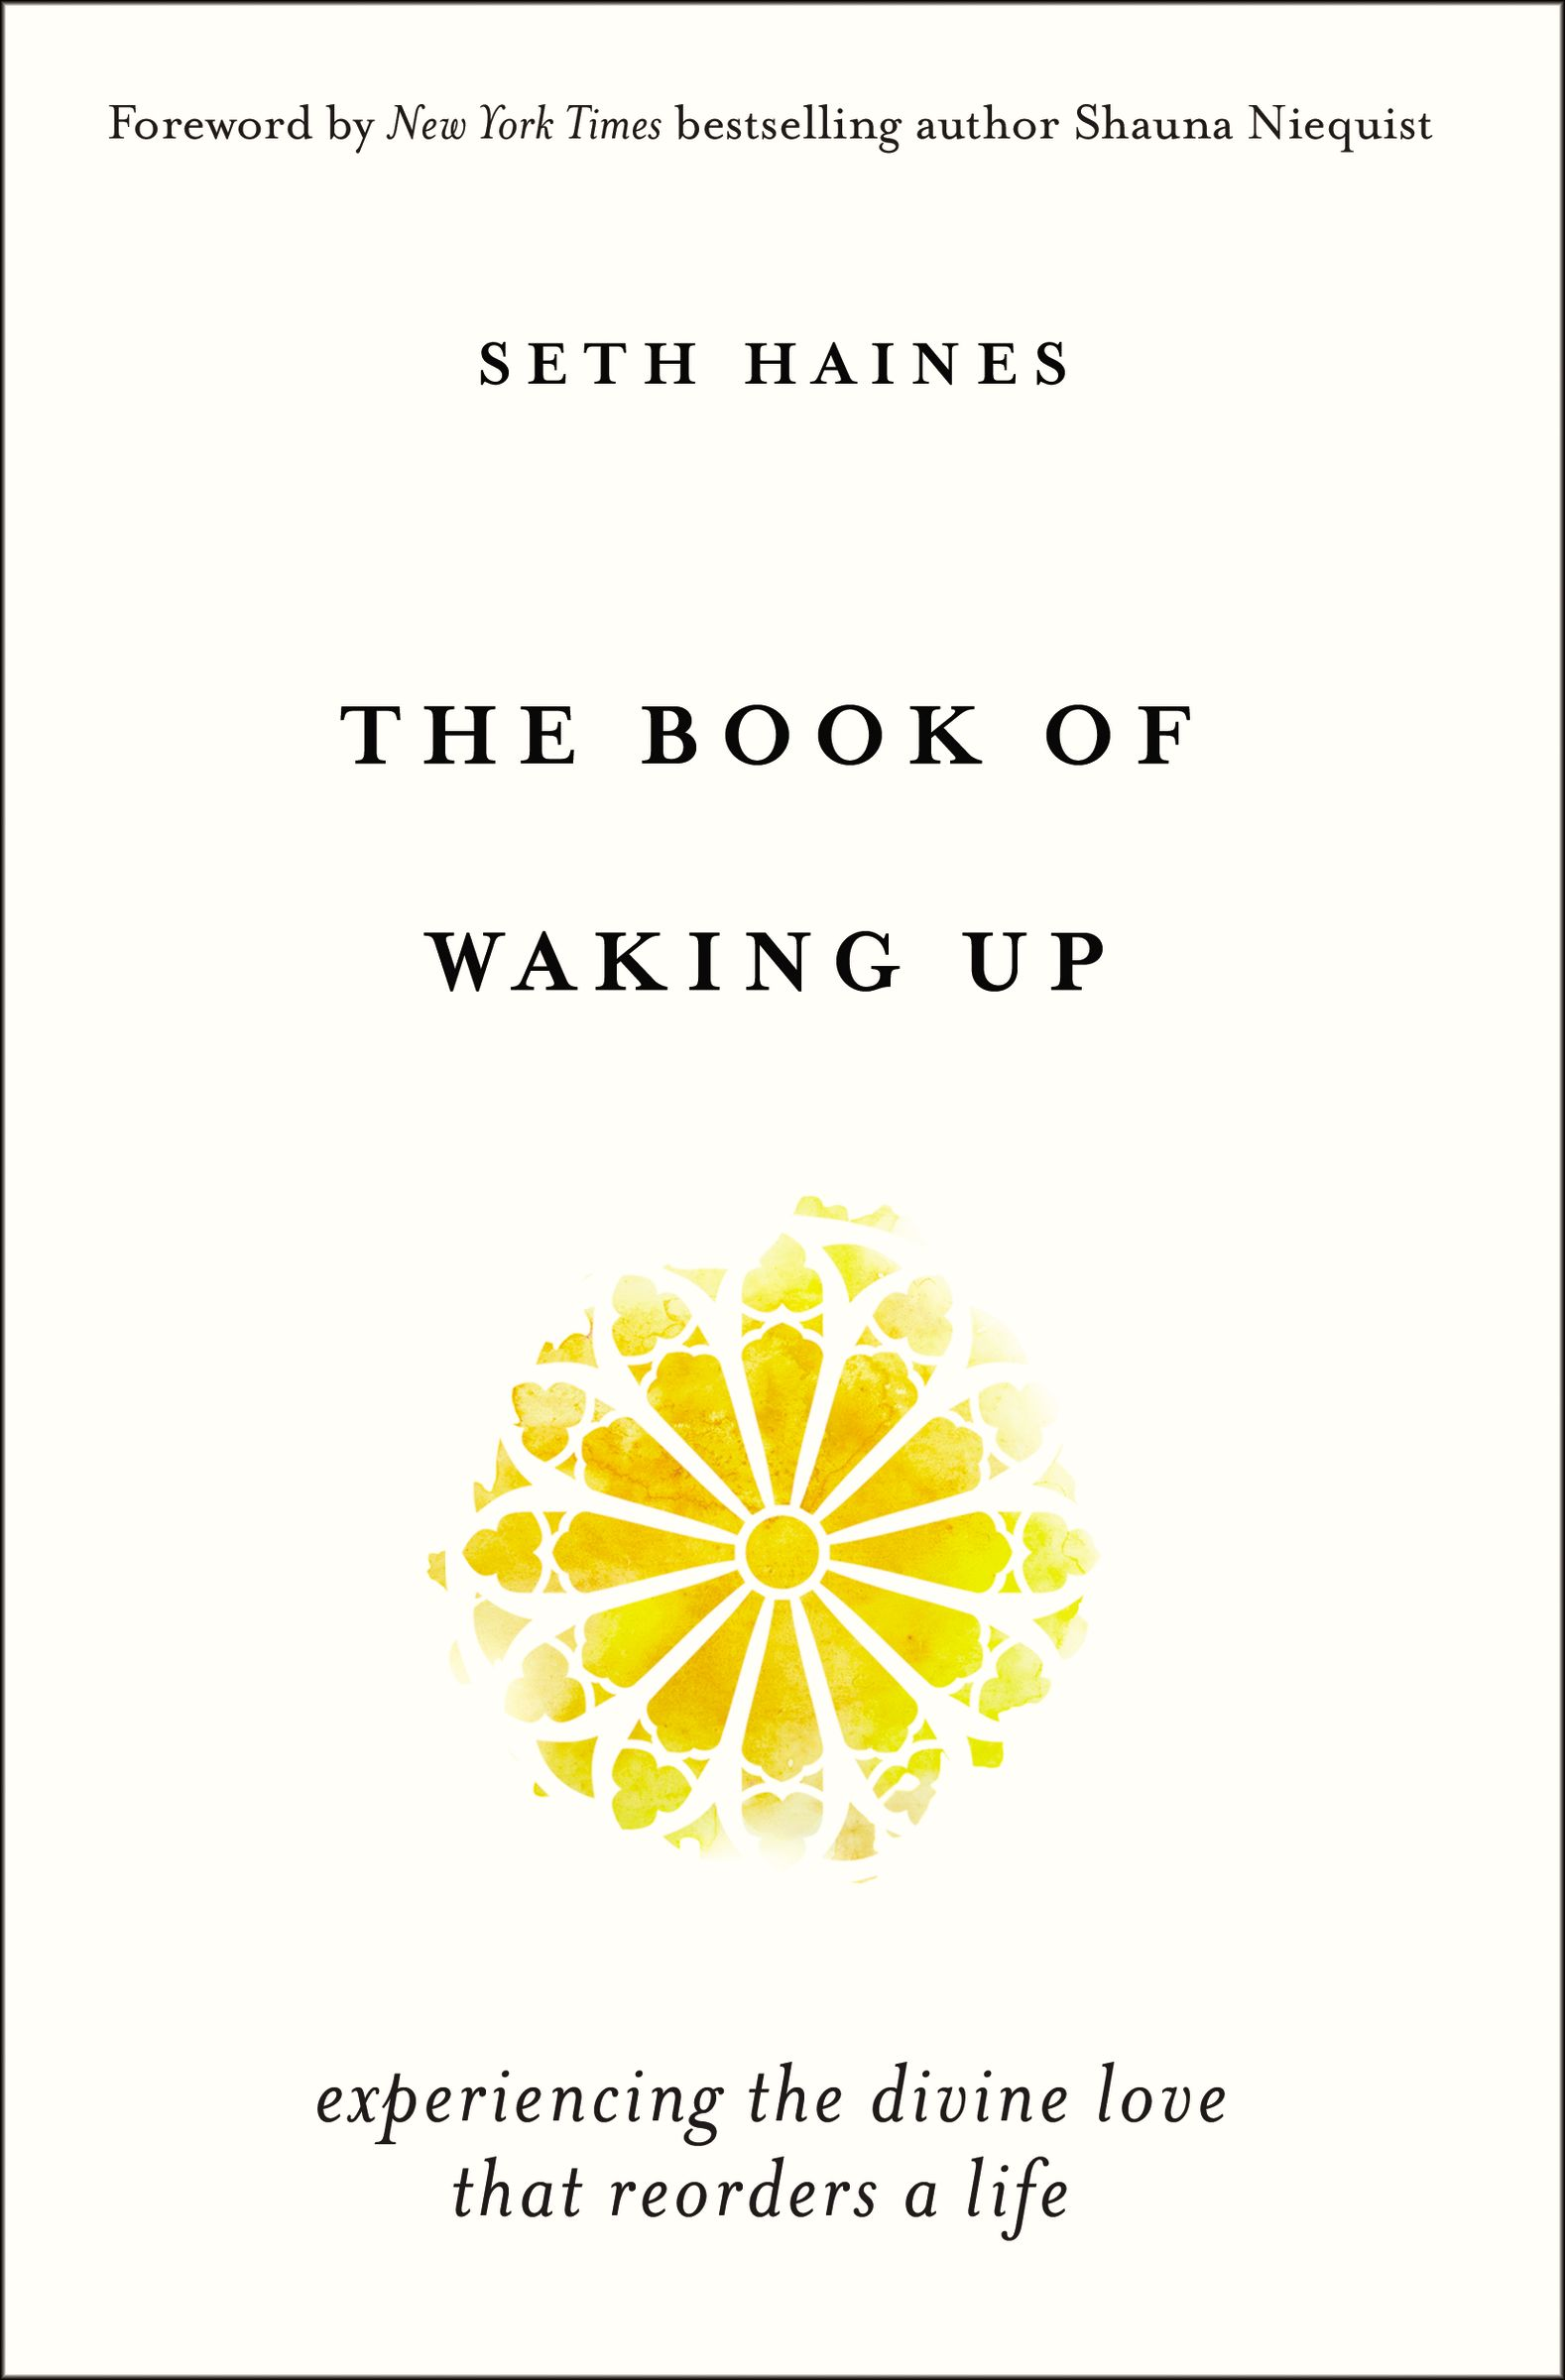 The Book of Waking Up: Experiencing the Divine Love That Reorders a Life by Seth Haines